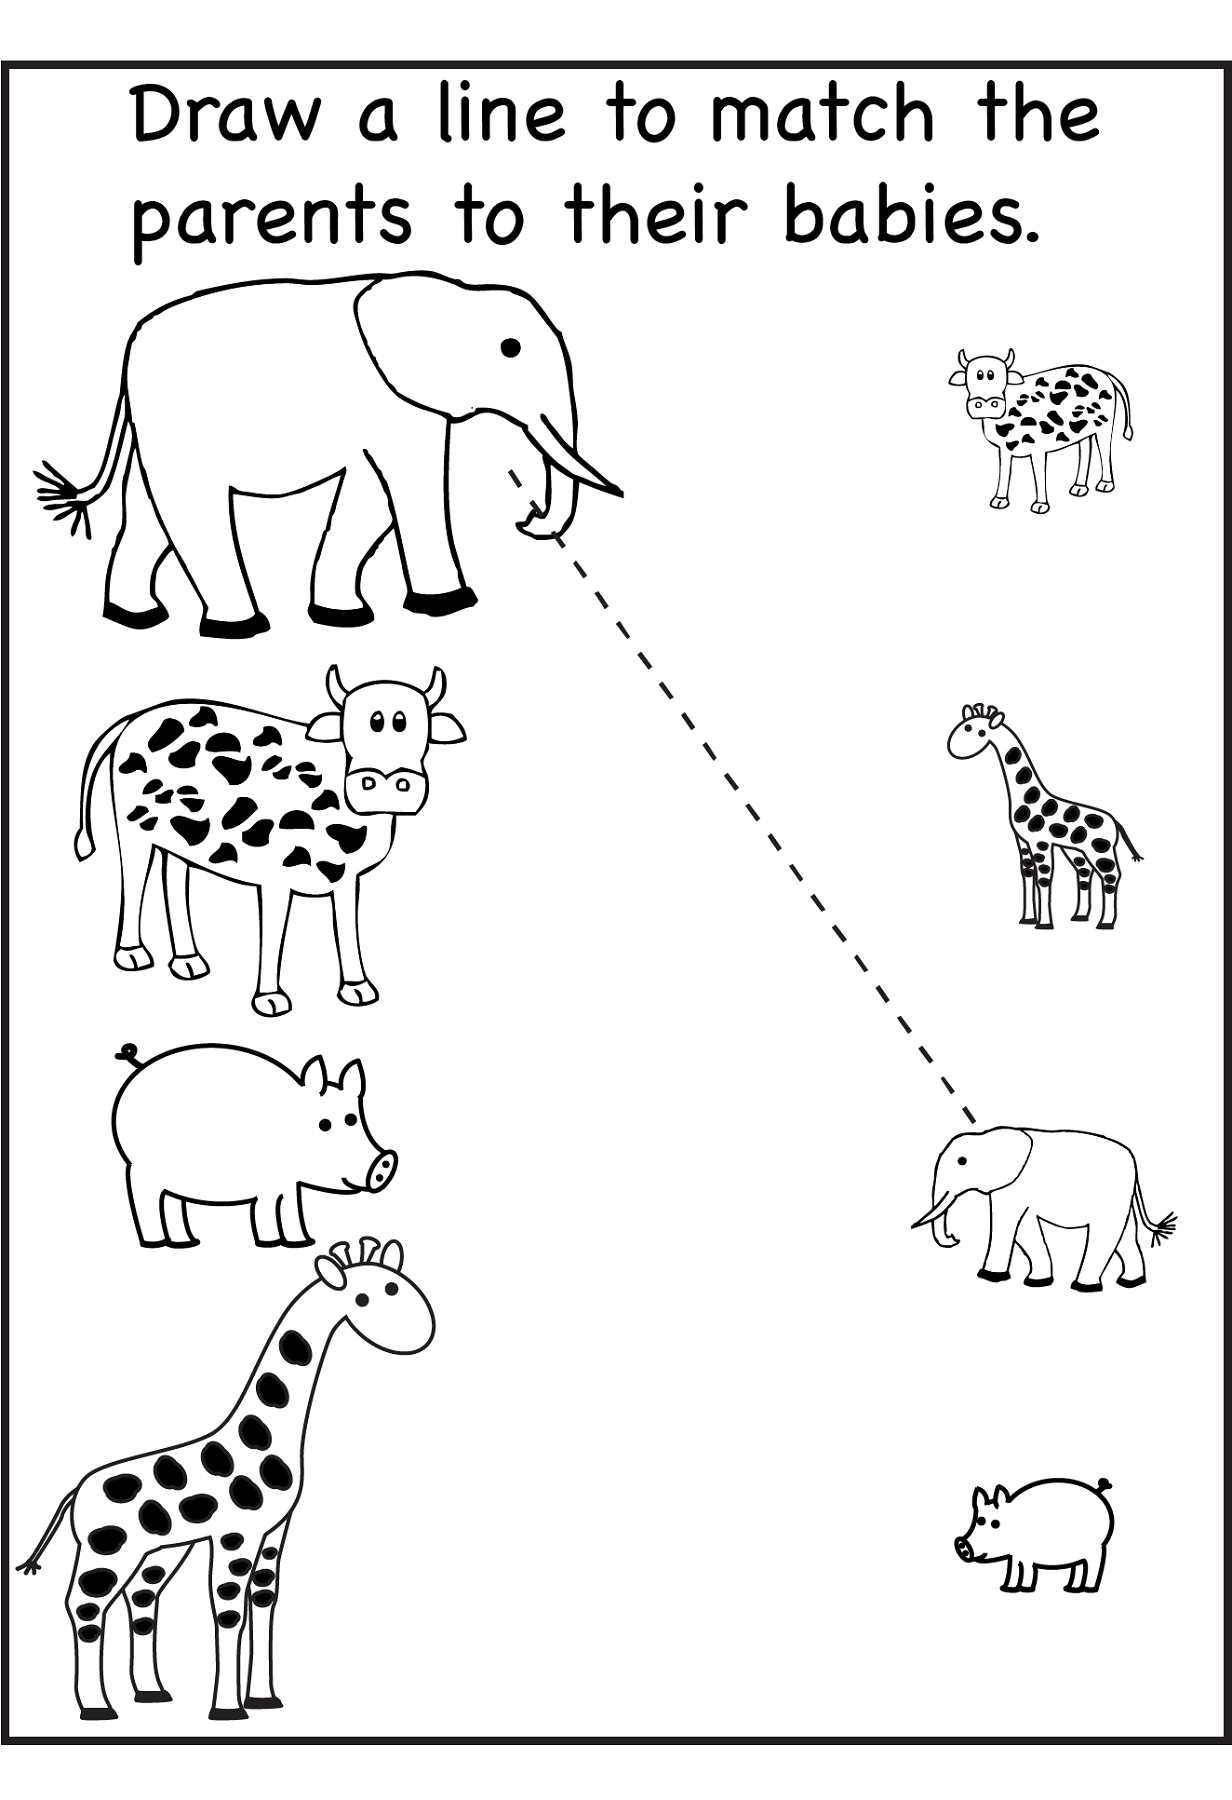 Printable Activity Sheets For Kids | Worksheets | Pinterest - Free Printable Activity Sheets For Kids